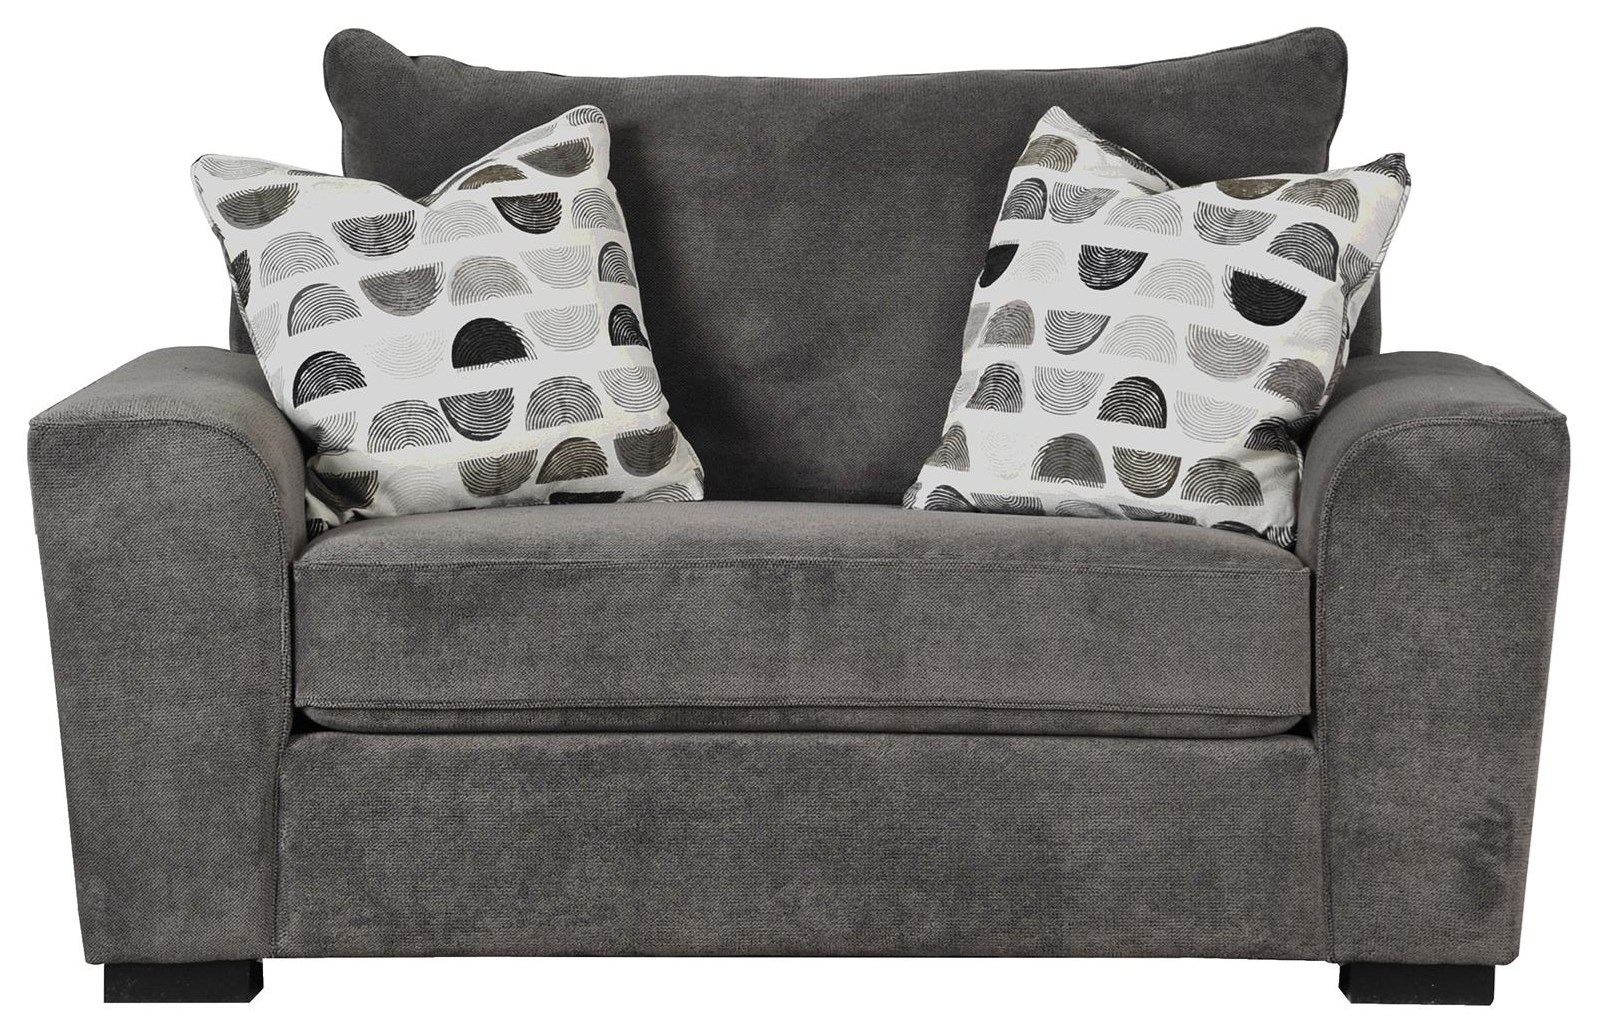 29658 Double Chair by Sunset Home at Sadler's Home Furnishings